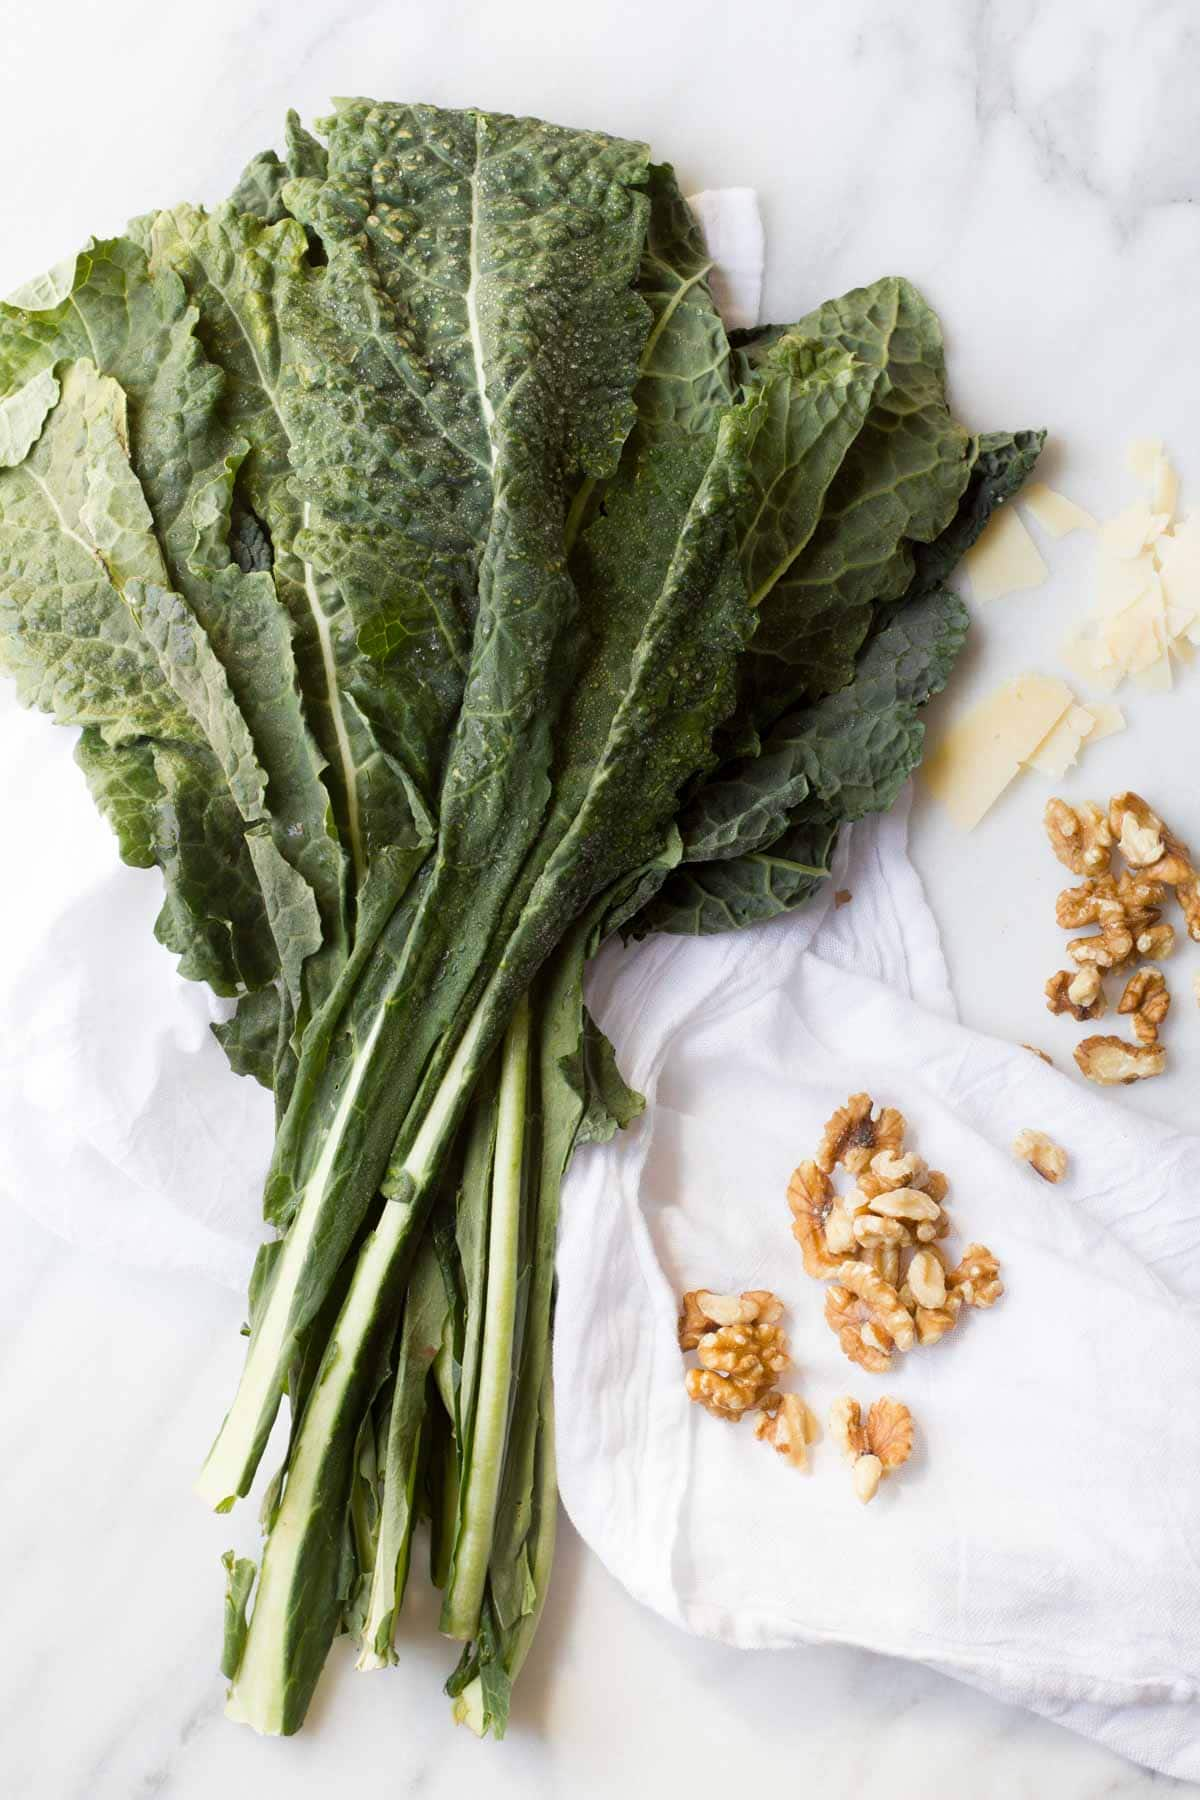 Washed kale and chopped nuts sit together on a white background.